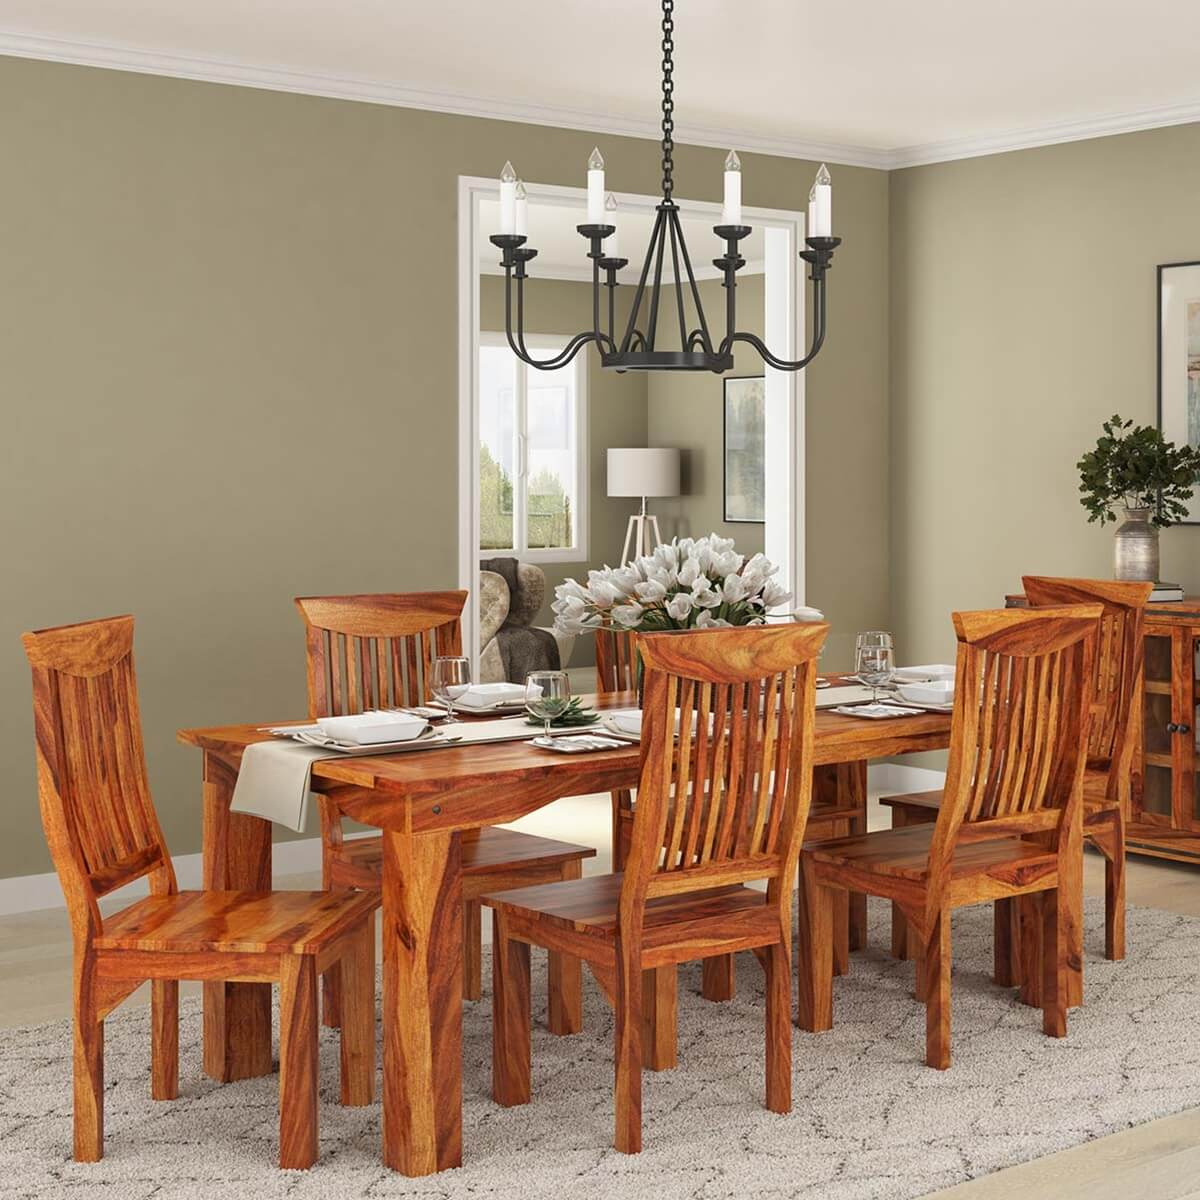 Rustic Wood Chairs Idaho Modern Rustic Solid Wood Dining Table And Chair Set